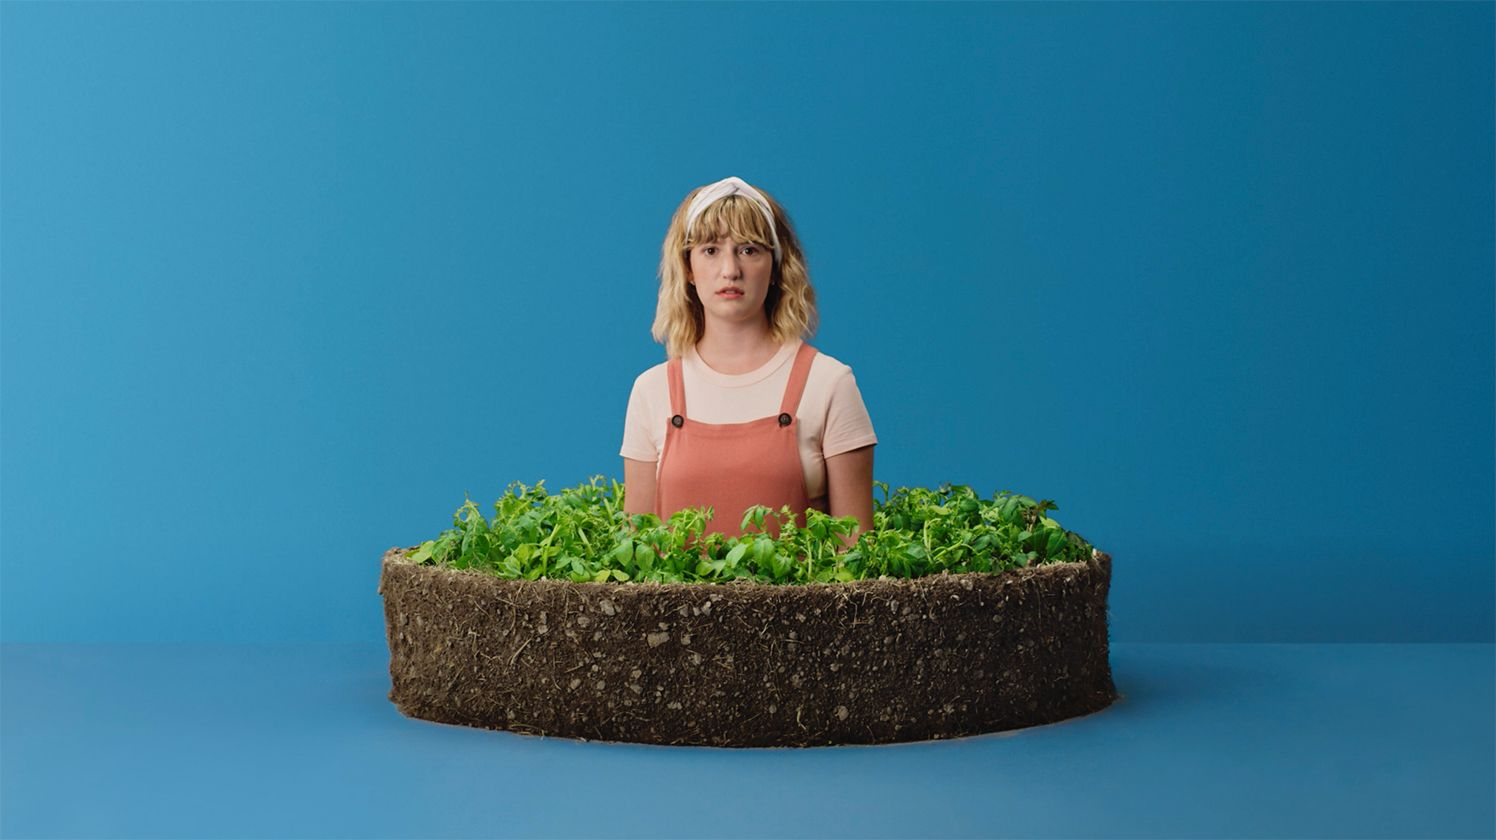 Photography of a Girl talking about potatoes in front of blue background